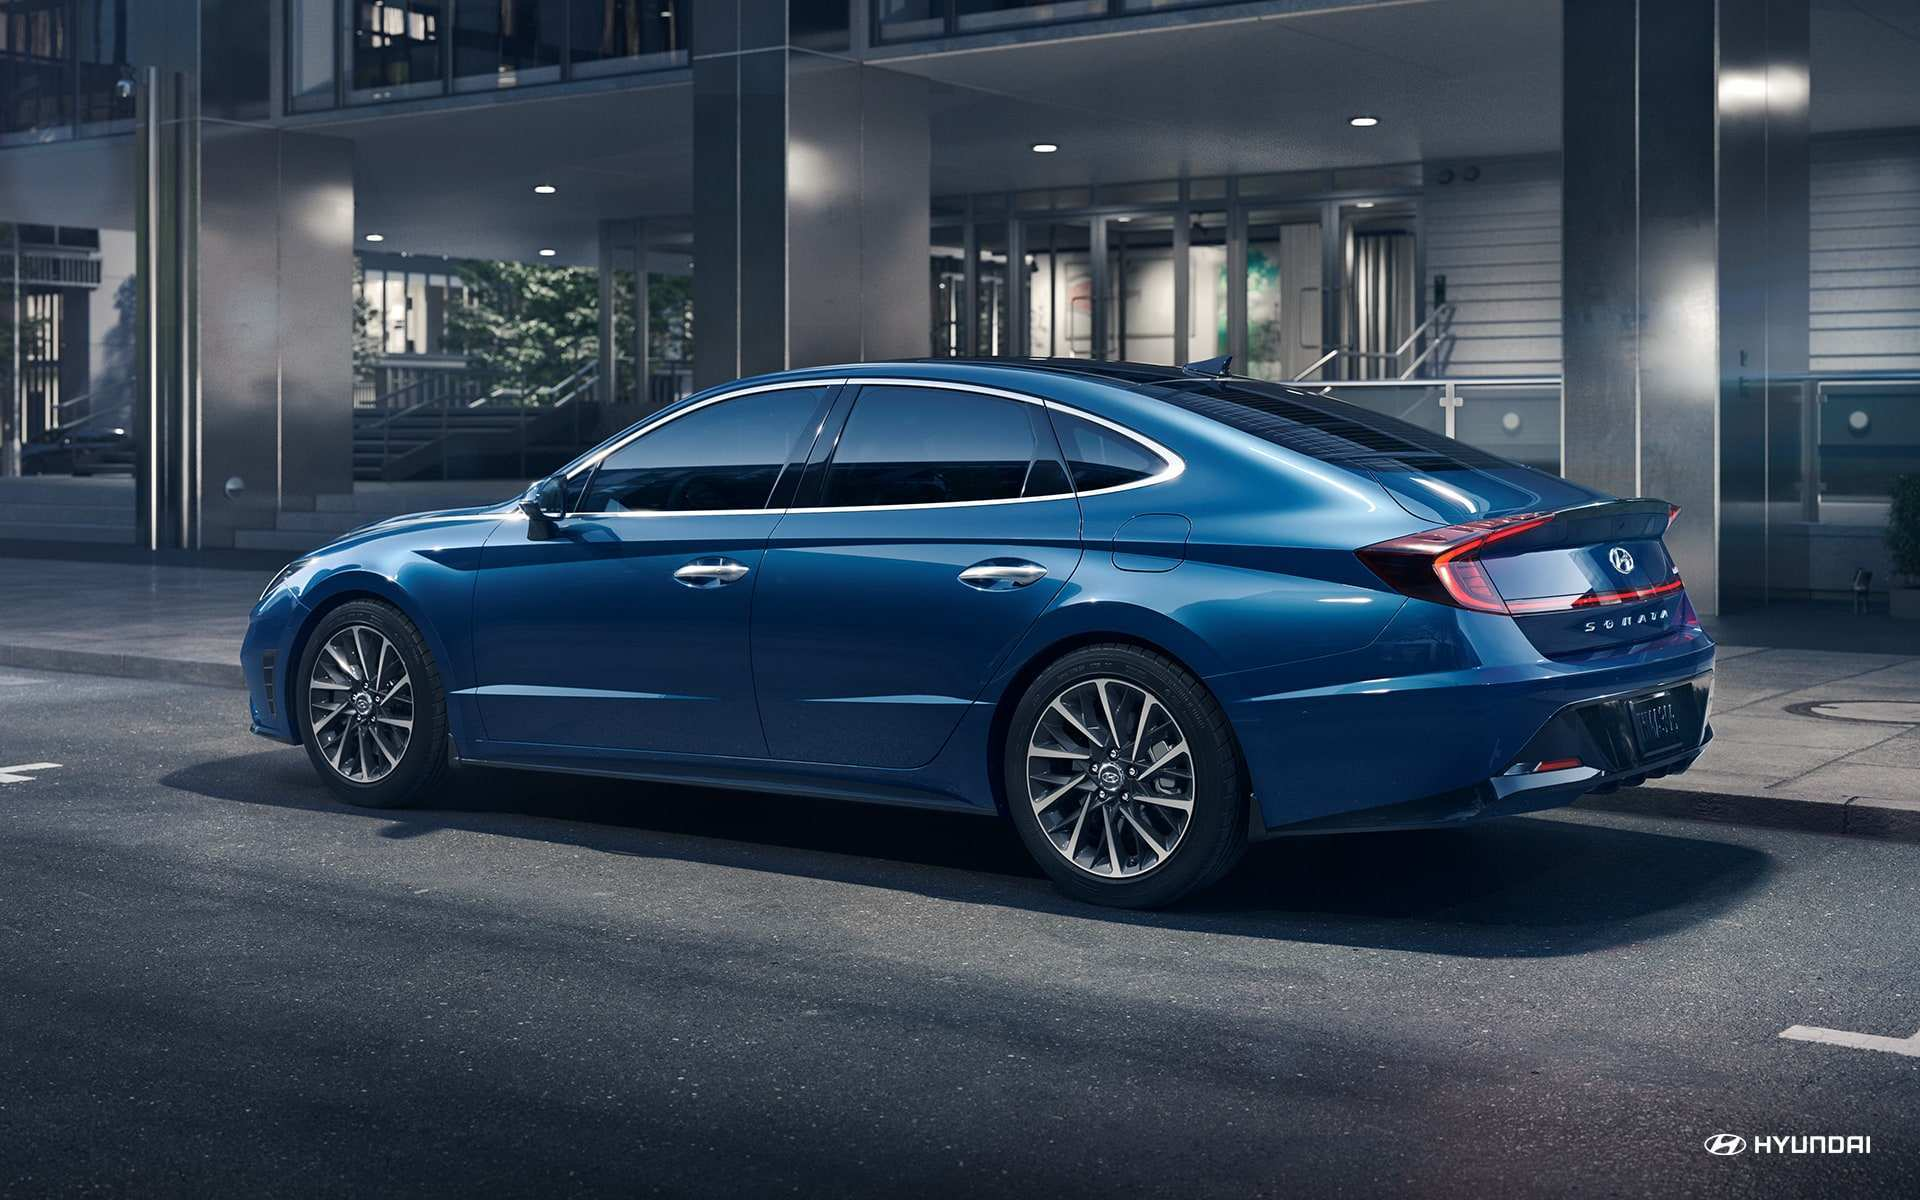 68 All New Pictures Of The 2020 Hyundai Sonata Spesification with Pictures Of The 2020 Hyundai Sonata